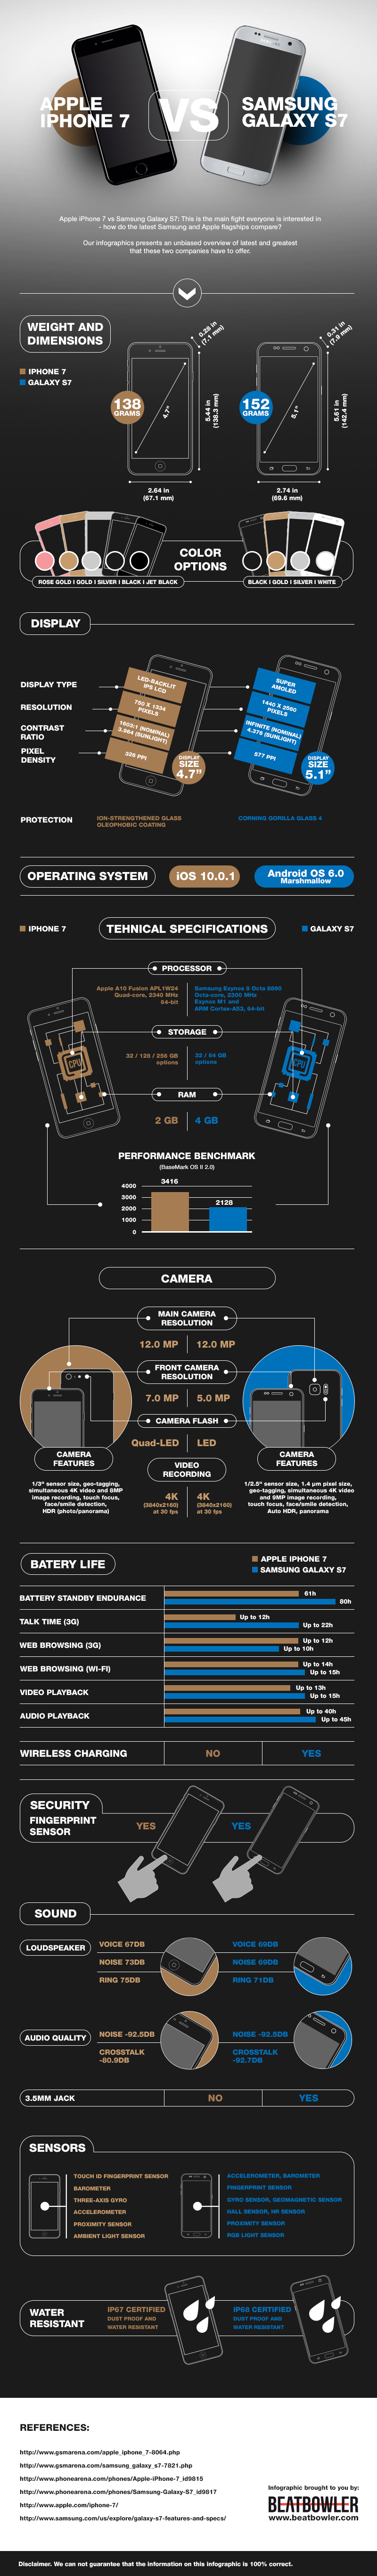 infographics-iphone7-vs-galaxys7